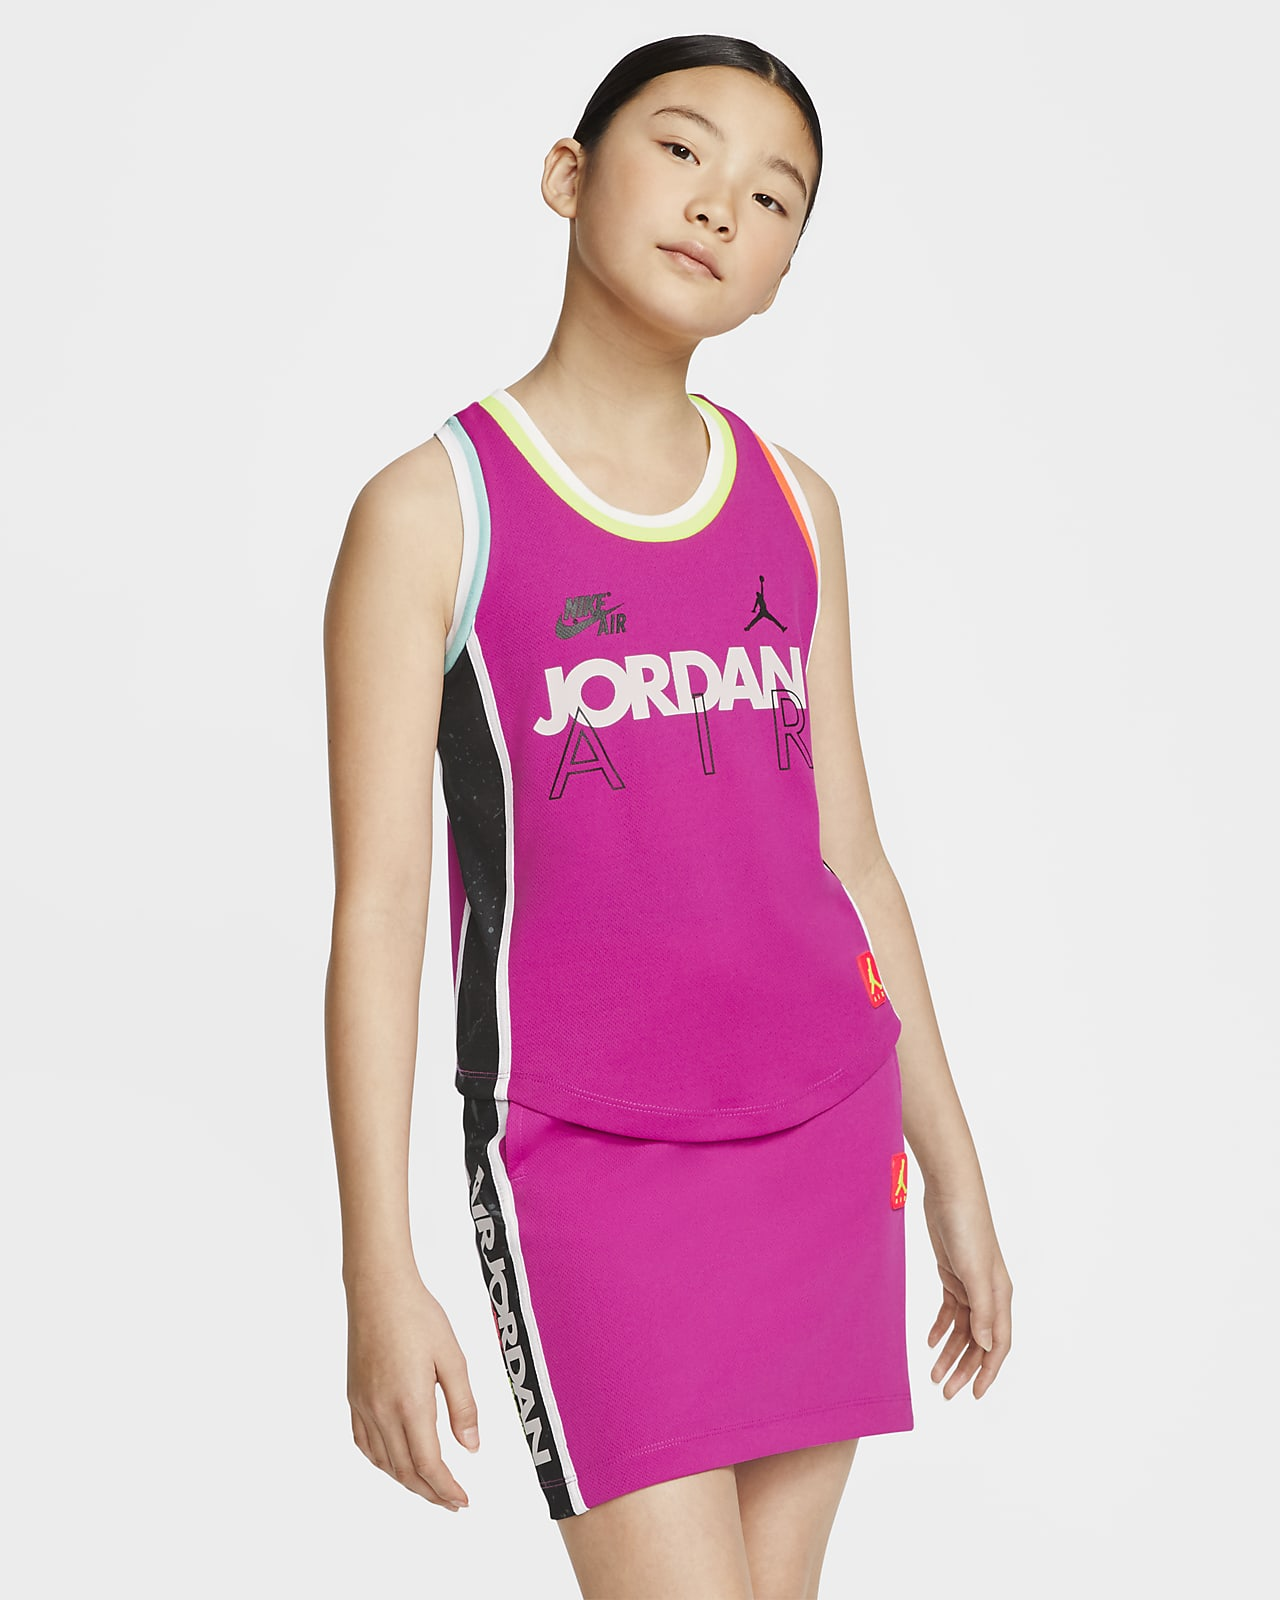 Jordan Older Kids' (Girls') Tank